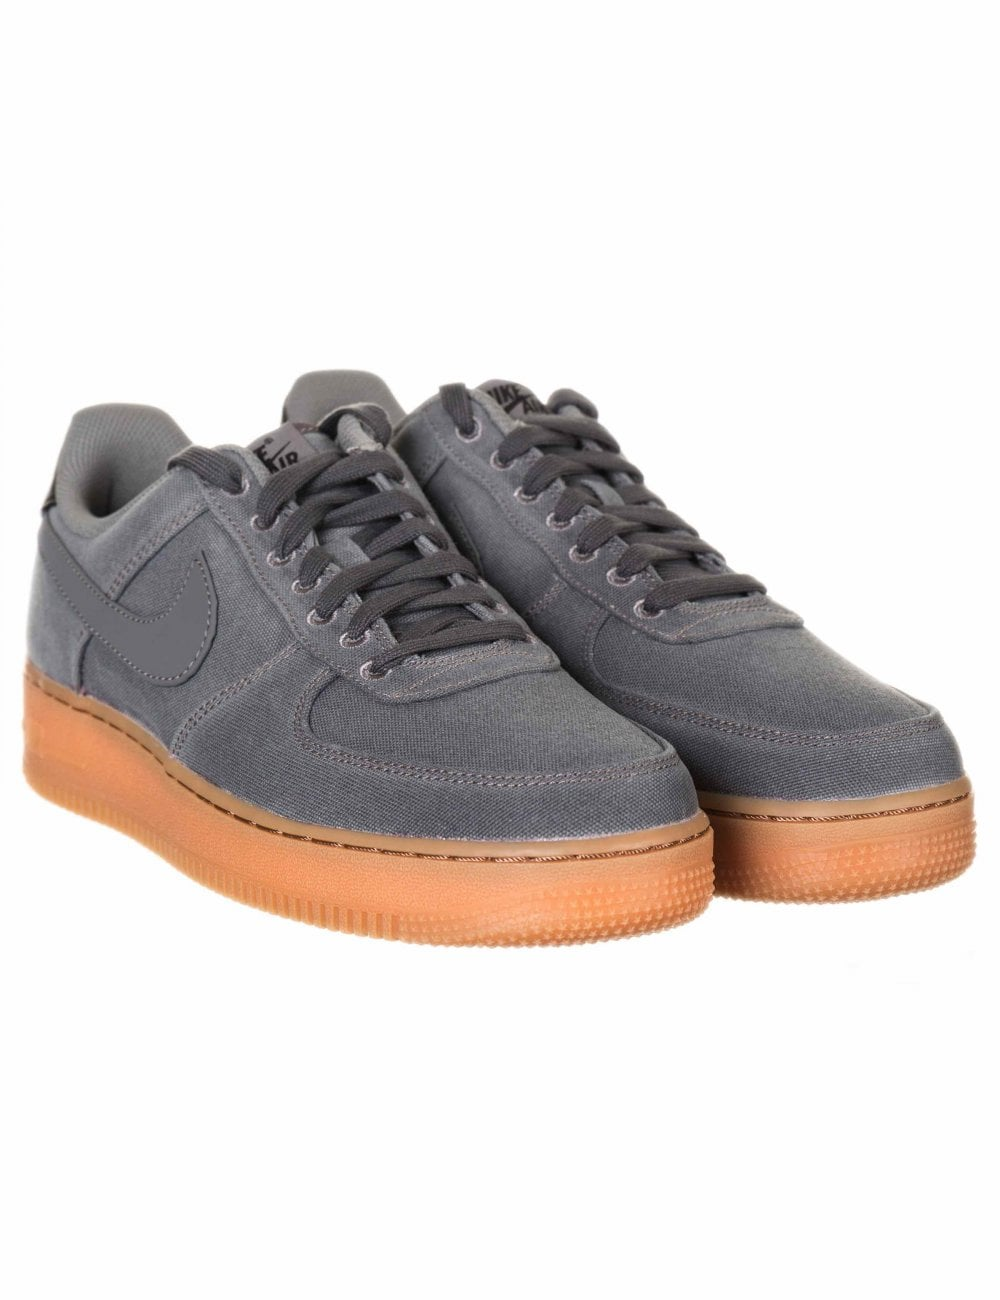 competitive price 85471 e5450 Nike Air Force 1 07 LV8 Trainers - Flat PewterGum